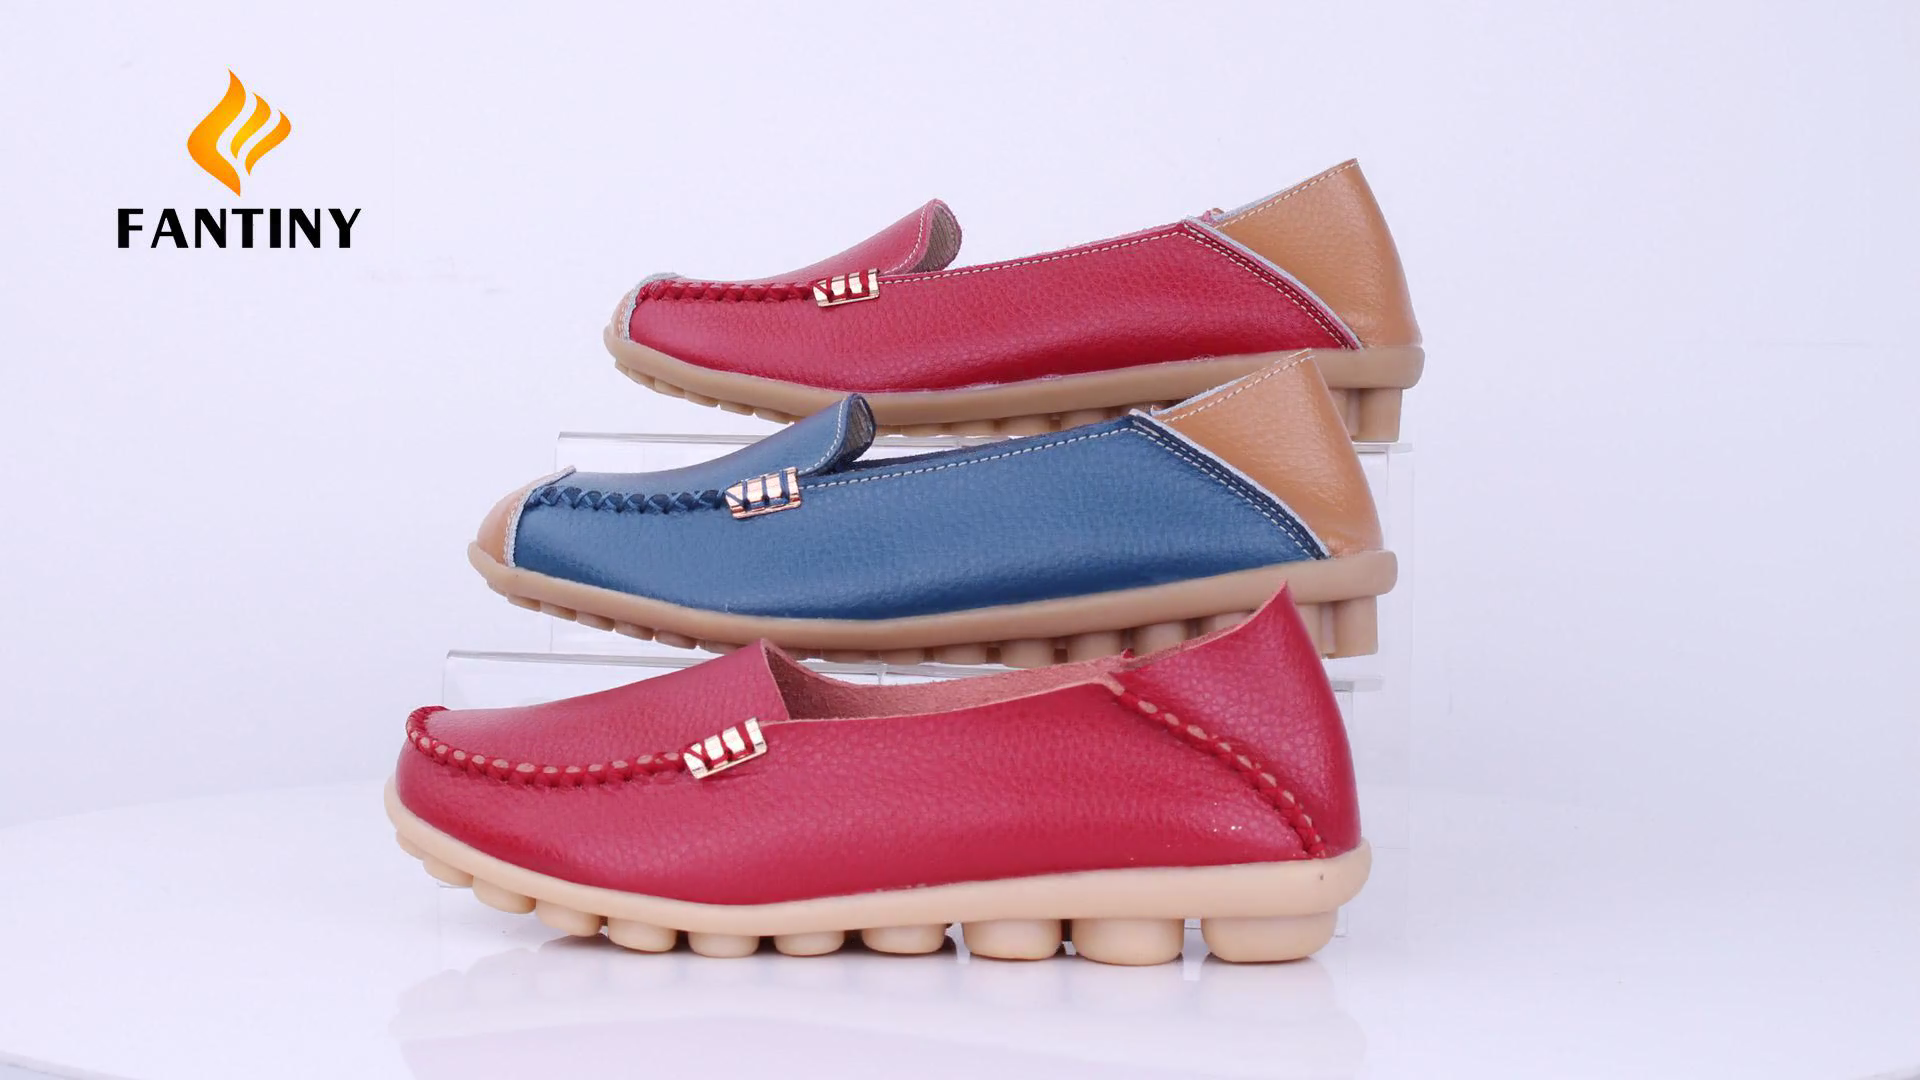 f3c53262ad02 CIOR Women s Genuine Leather Loafers Casual Moccasin Driving ...